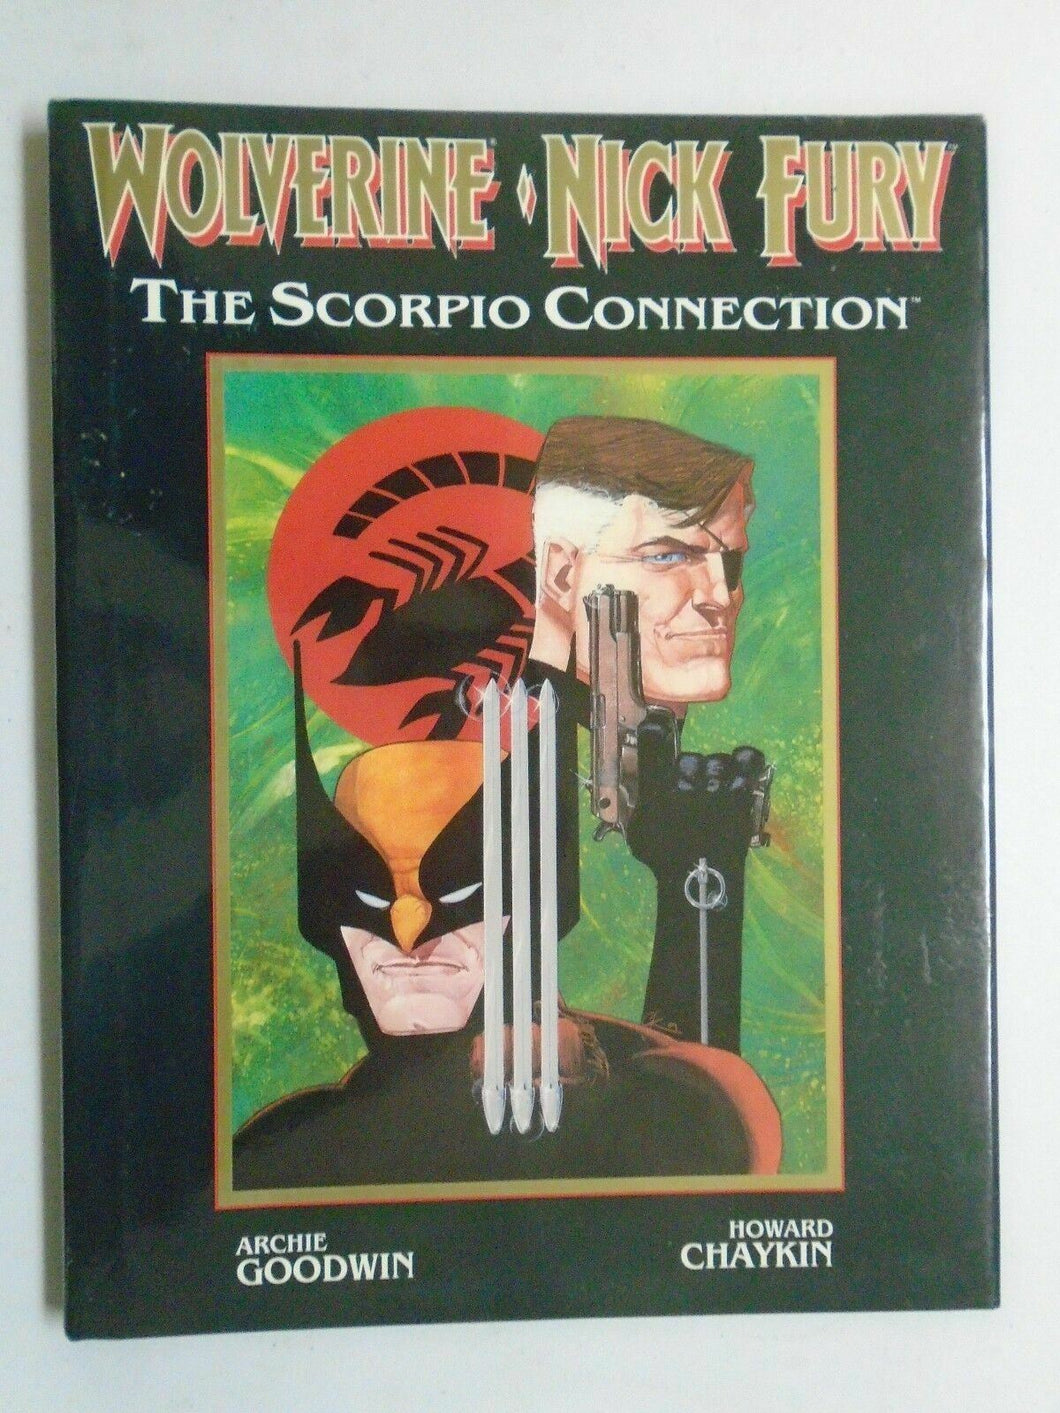 Wolverine Nick Fury The Scorpio Connection #1 Harcover 1st Print 6.0 FN (1989)